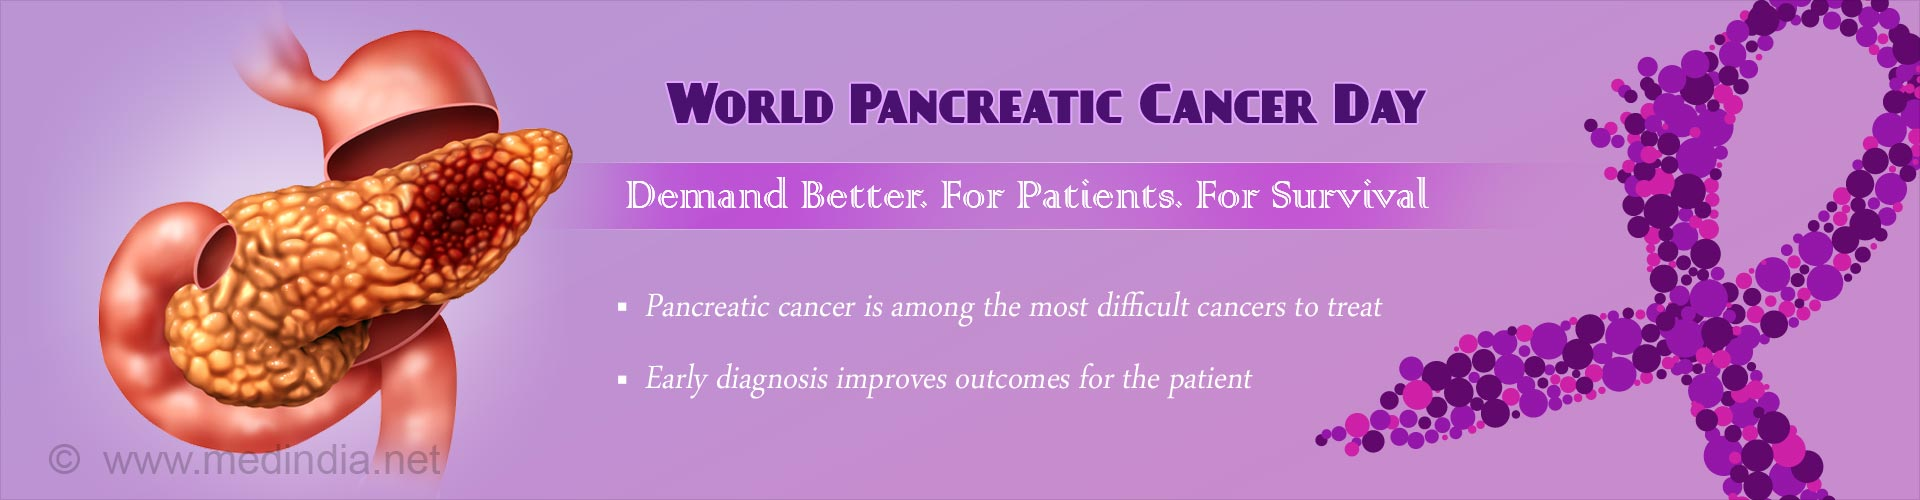 World Pancreatic Cancer Day 2017